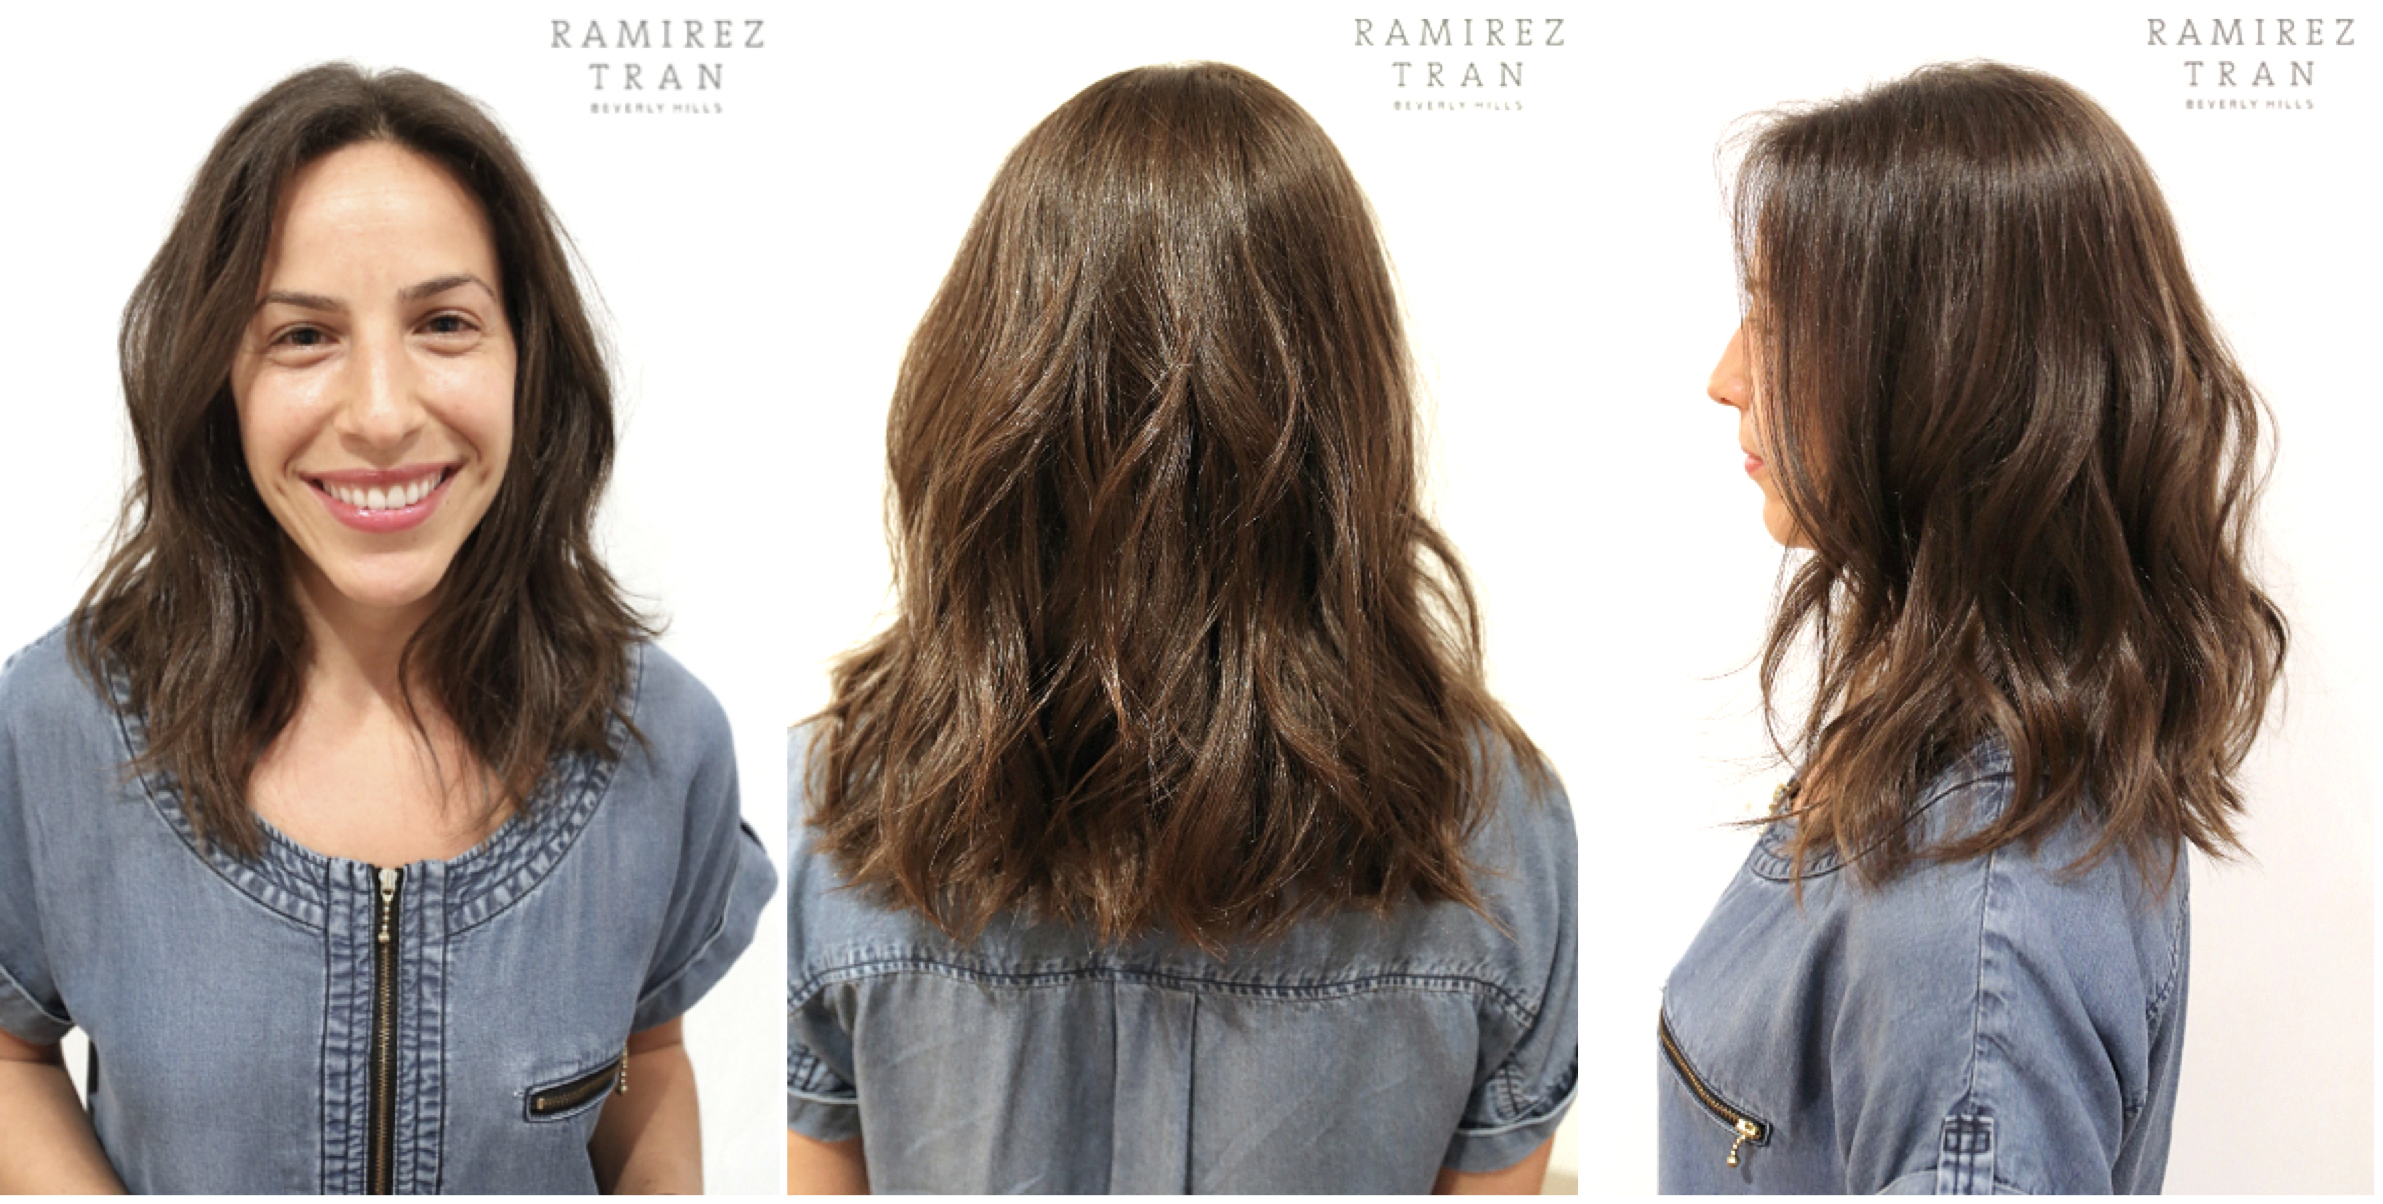 Before and After Archives - Page 26 of 65 - Ramirez | Tran Salon